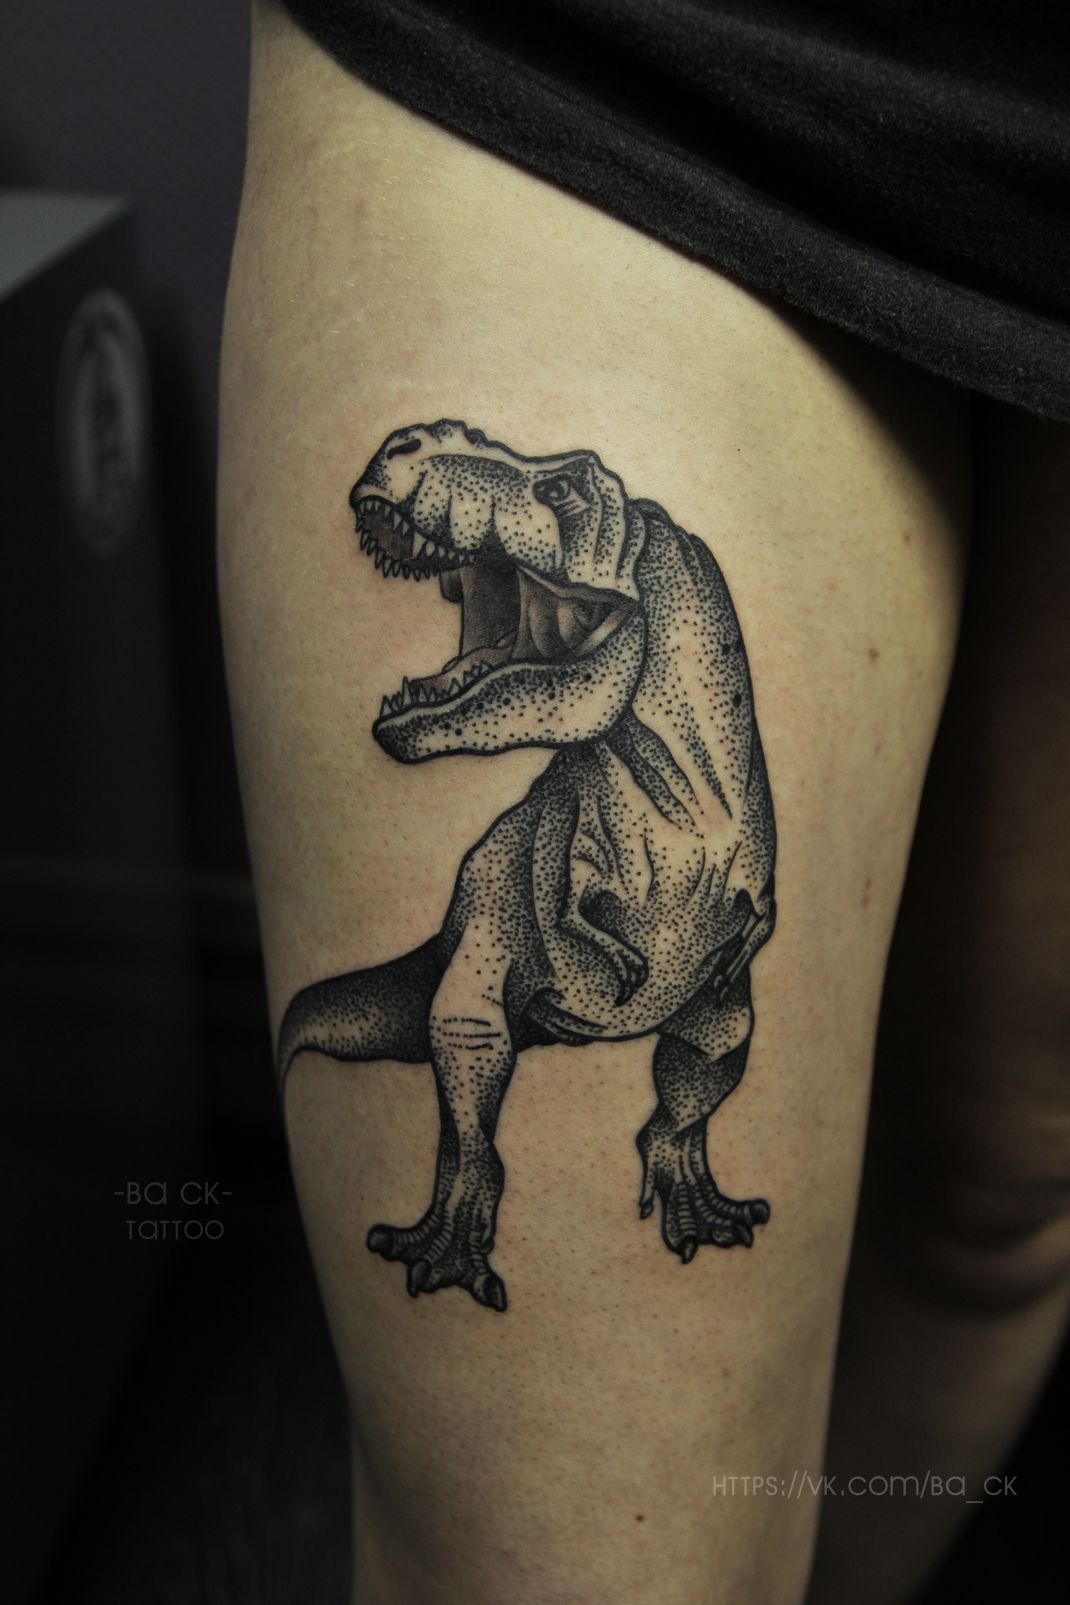 947fa5060 Ba ck (black dot art) #dotwork #tattoo #t-rex | Tattoo ideas | T rex ...